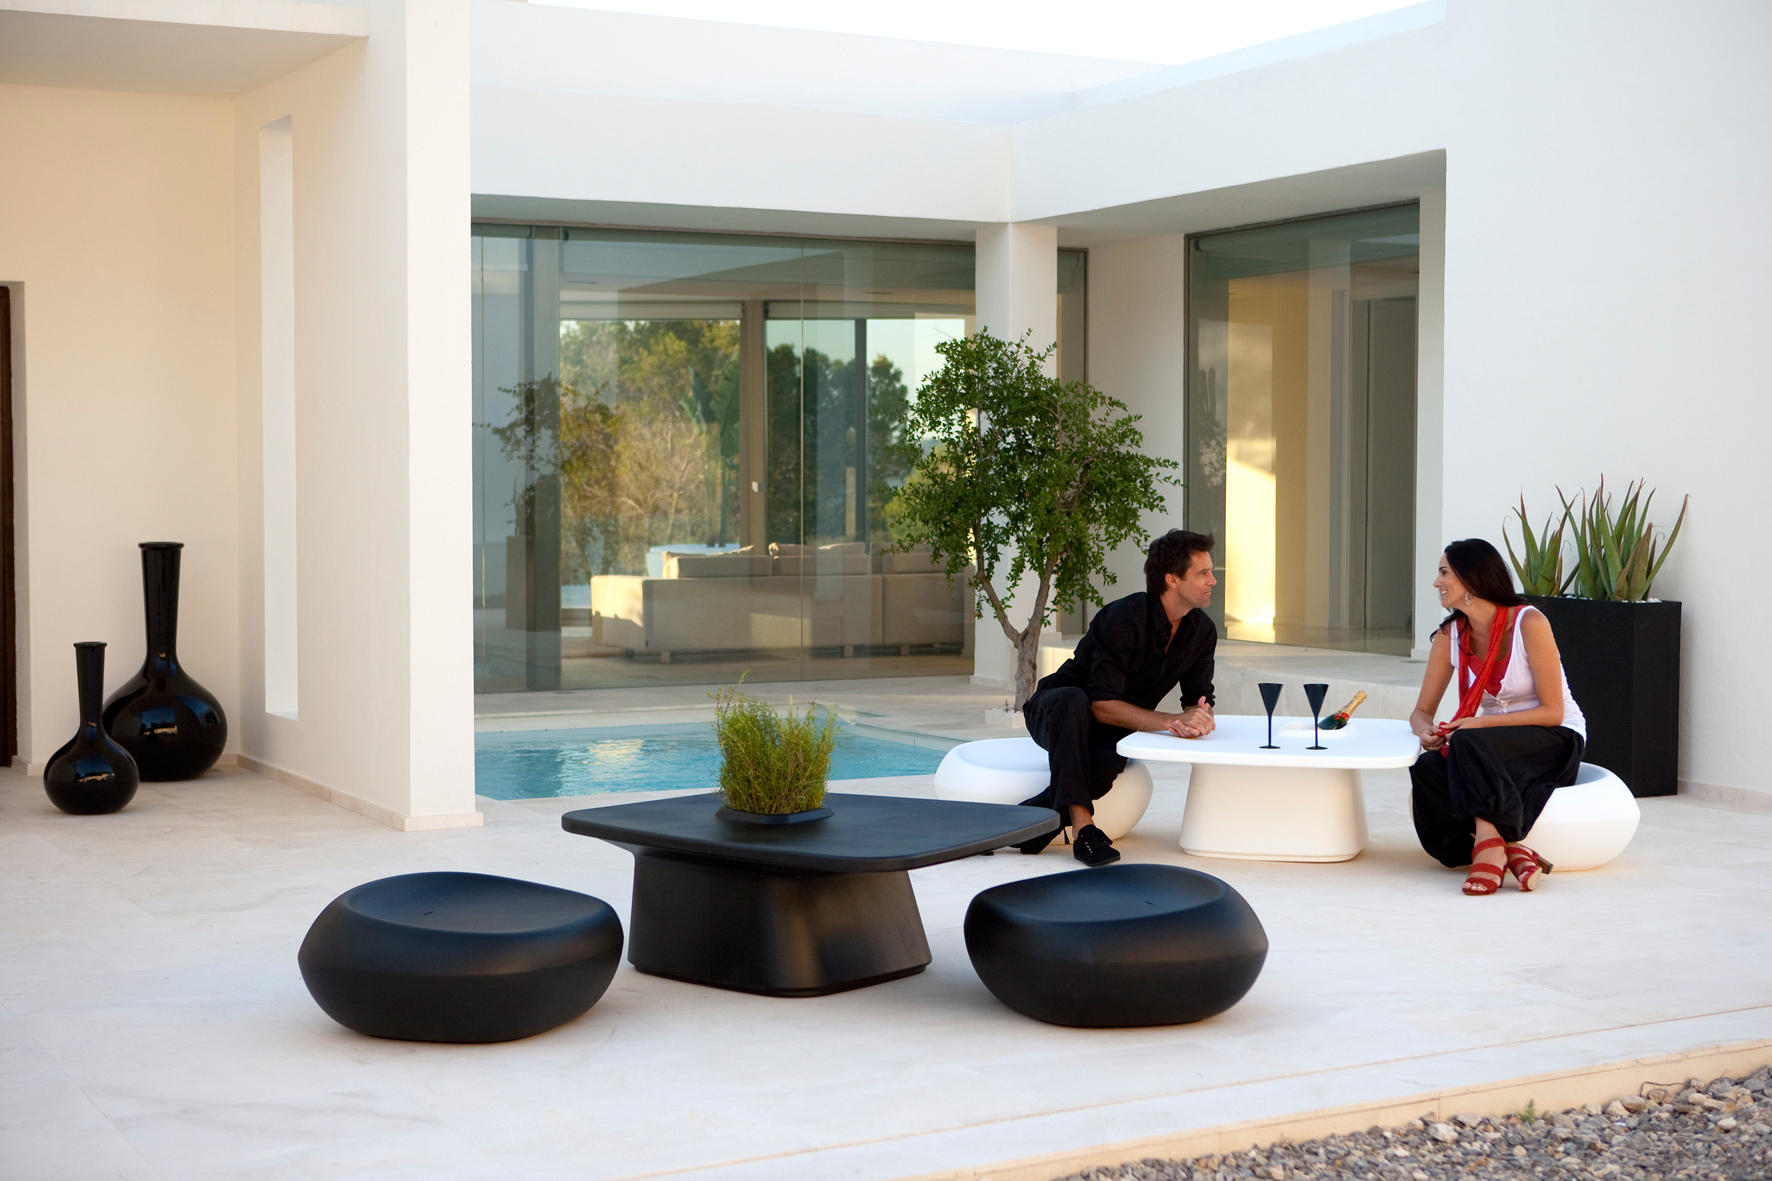 moma medium chair garden stools from vondom architonic. Black Bedroom Furniture Sets. Home Design Ideas